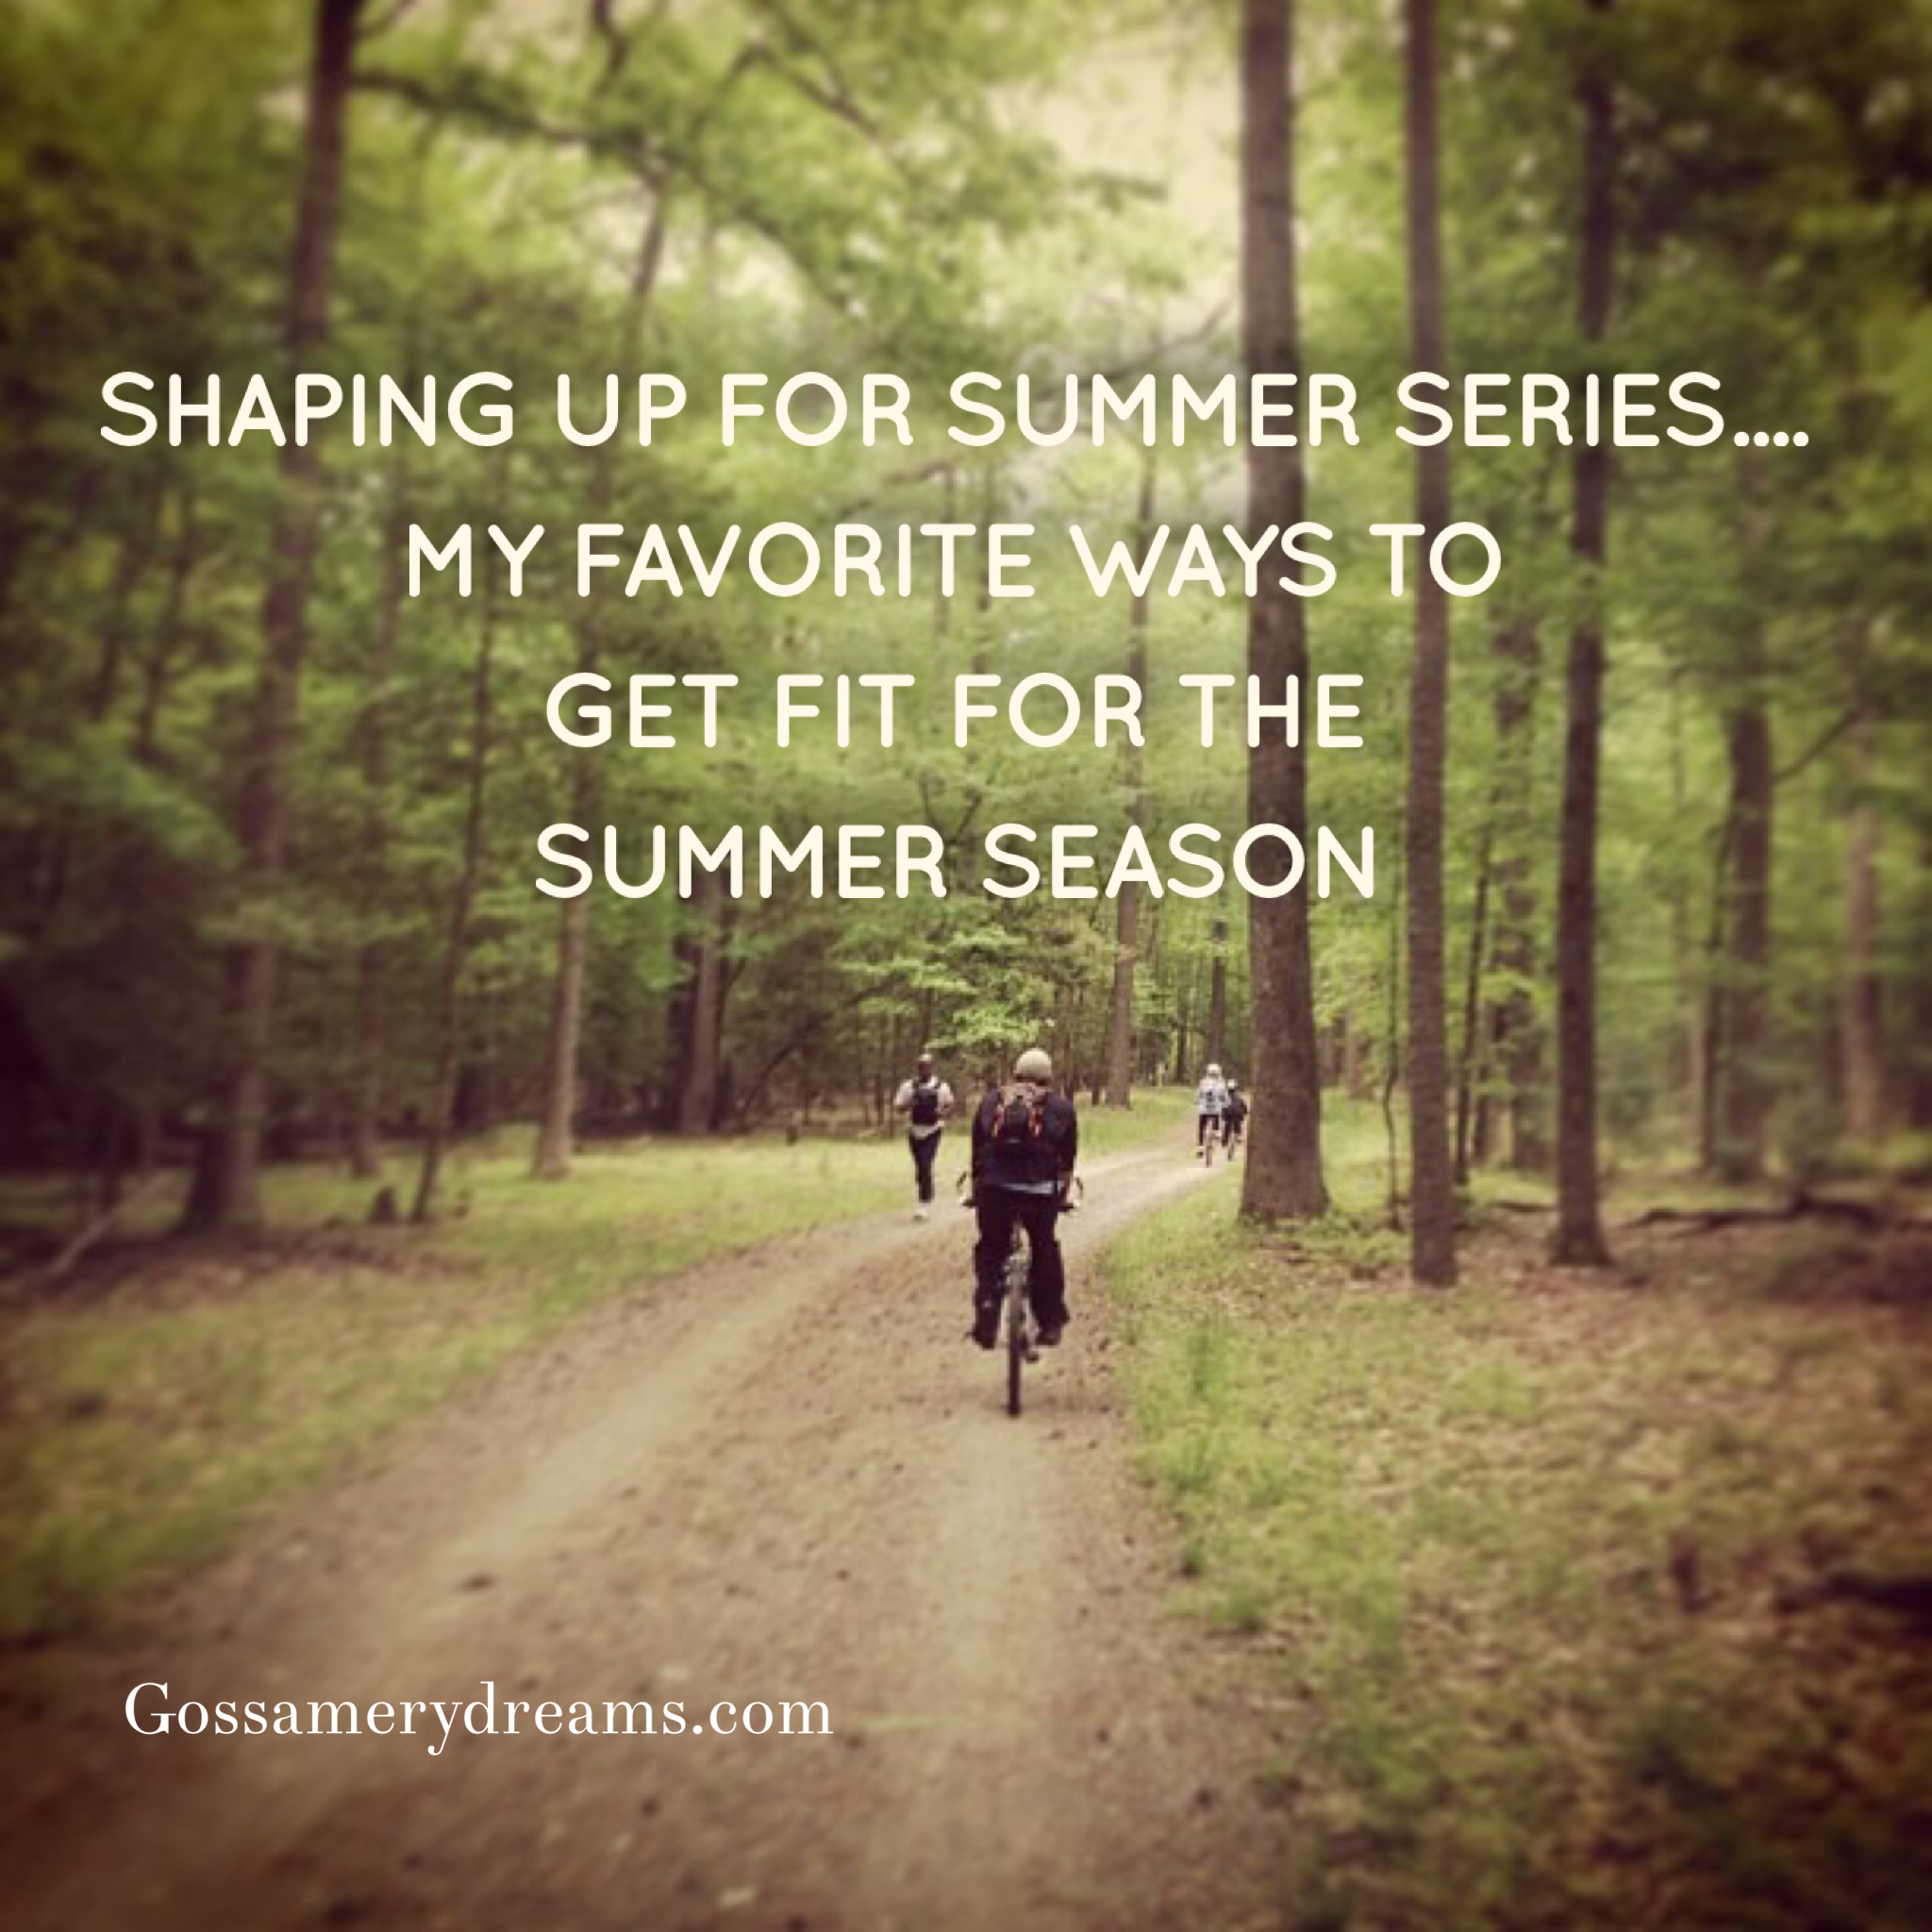 Shaping up for summer series! Come get fit with me! Visit www.gossamerydreams.com to learn more.